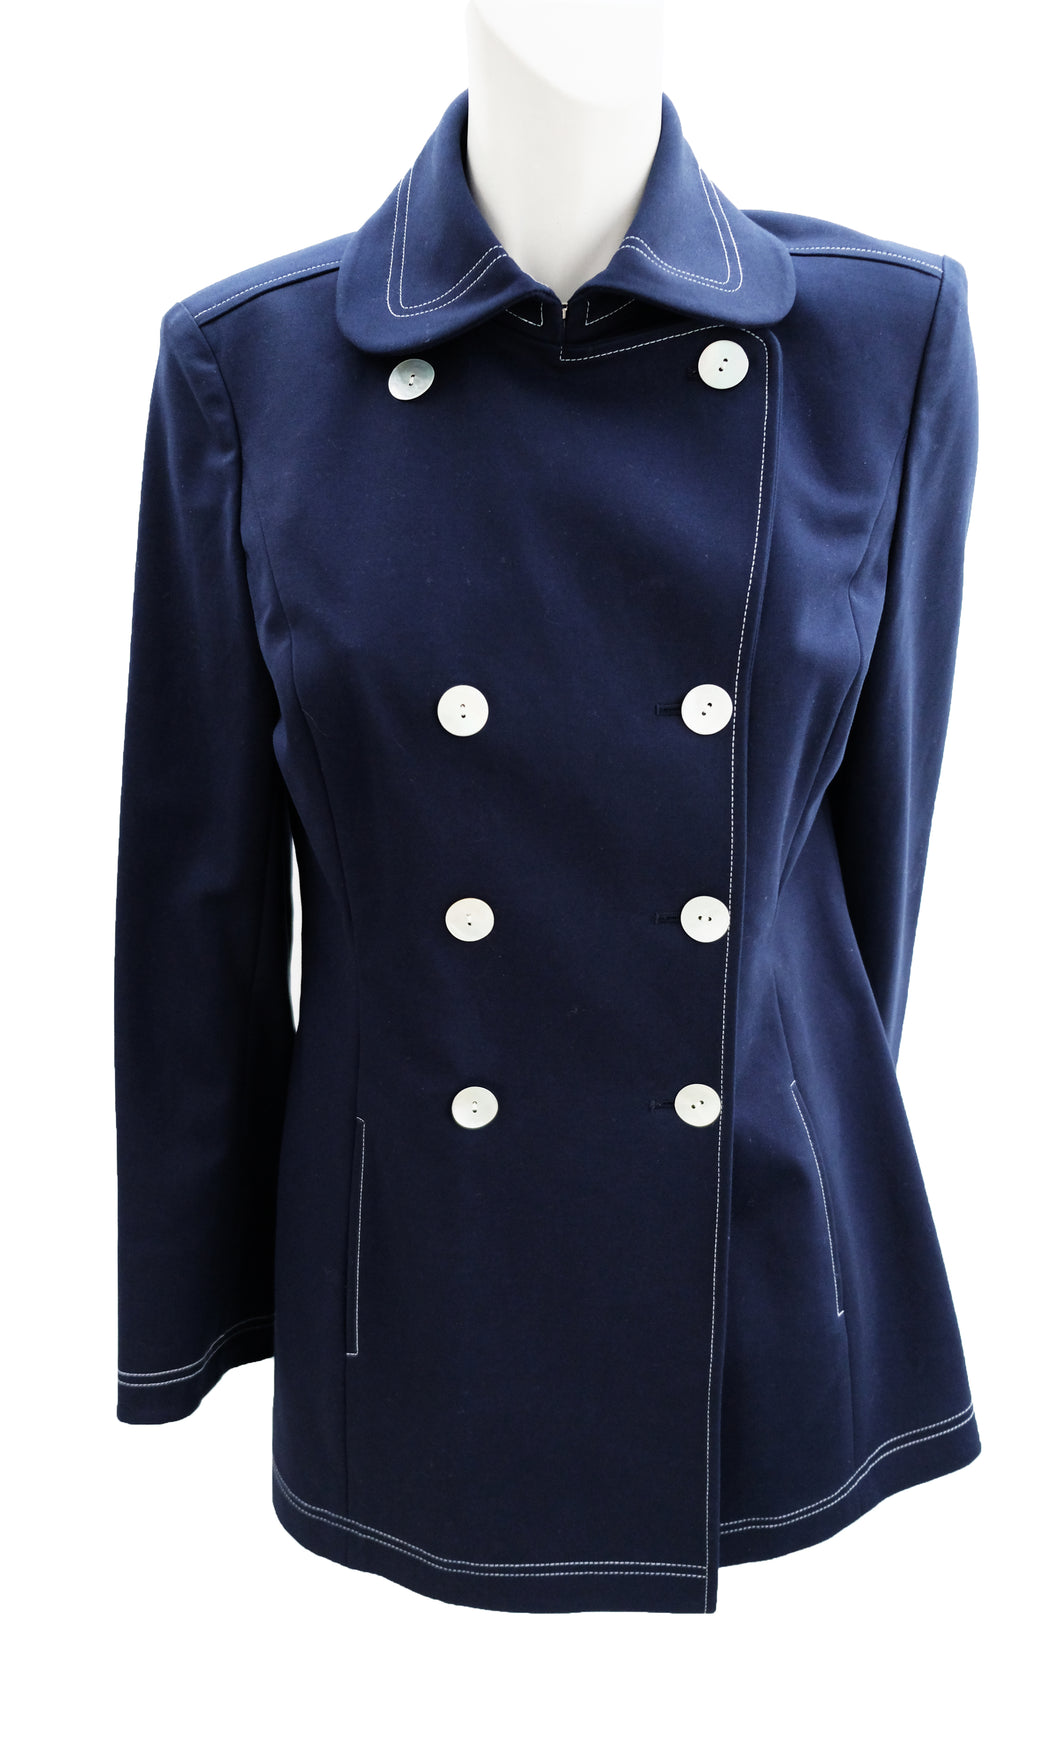 Ellen Tracy Nautical Double Breasted Reefer Jacket in Navy with White Stitching, UK10-12